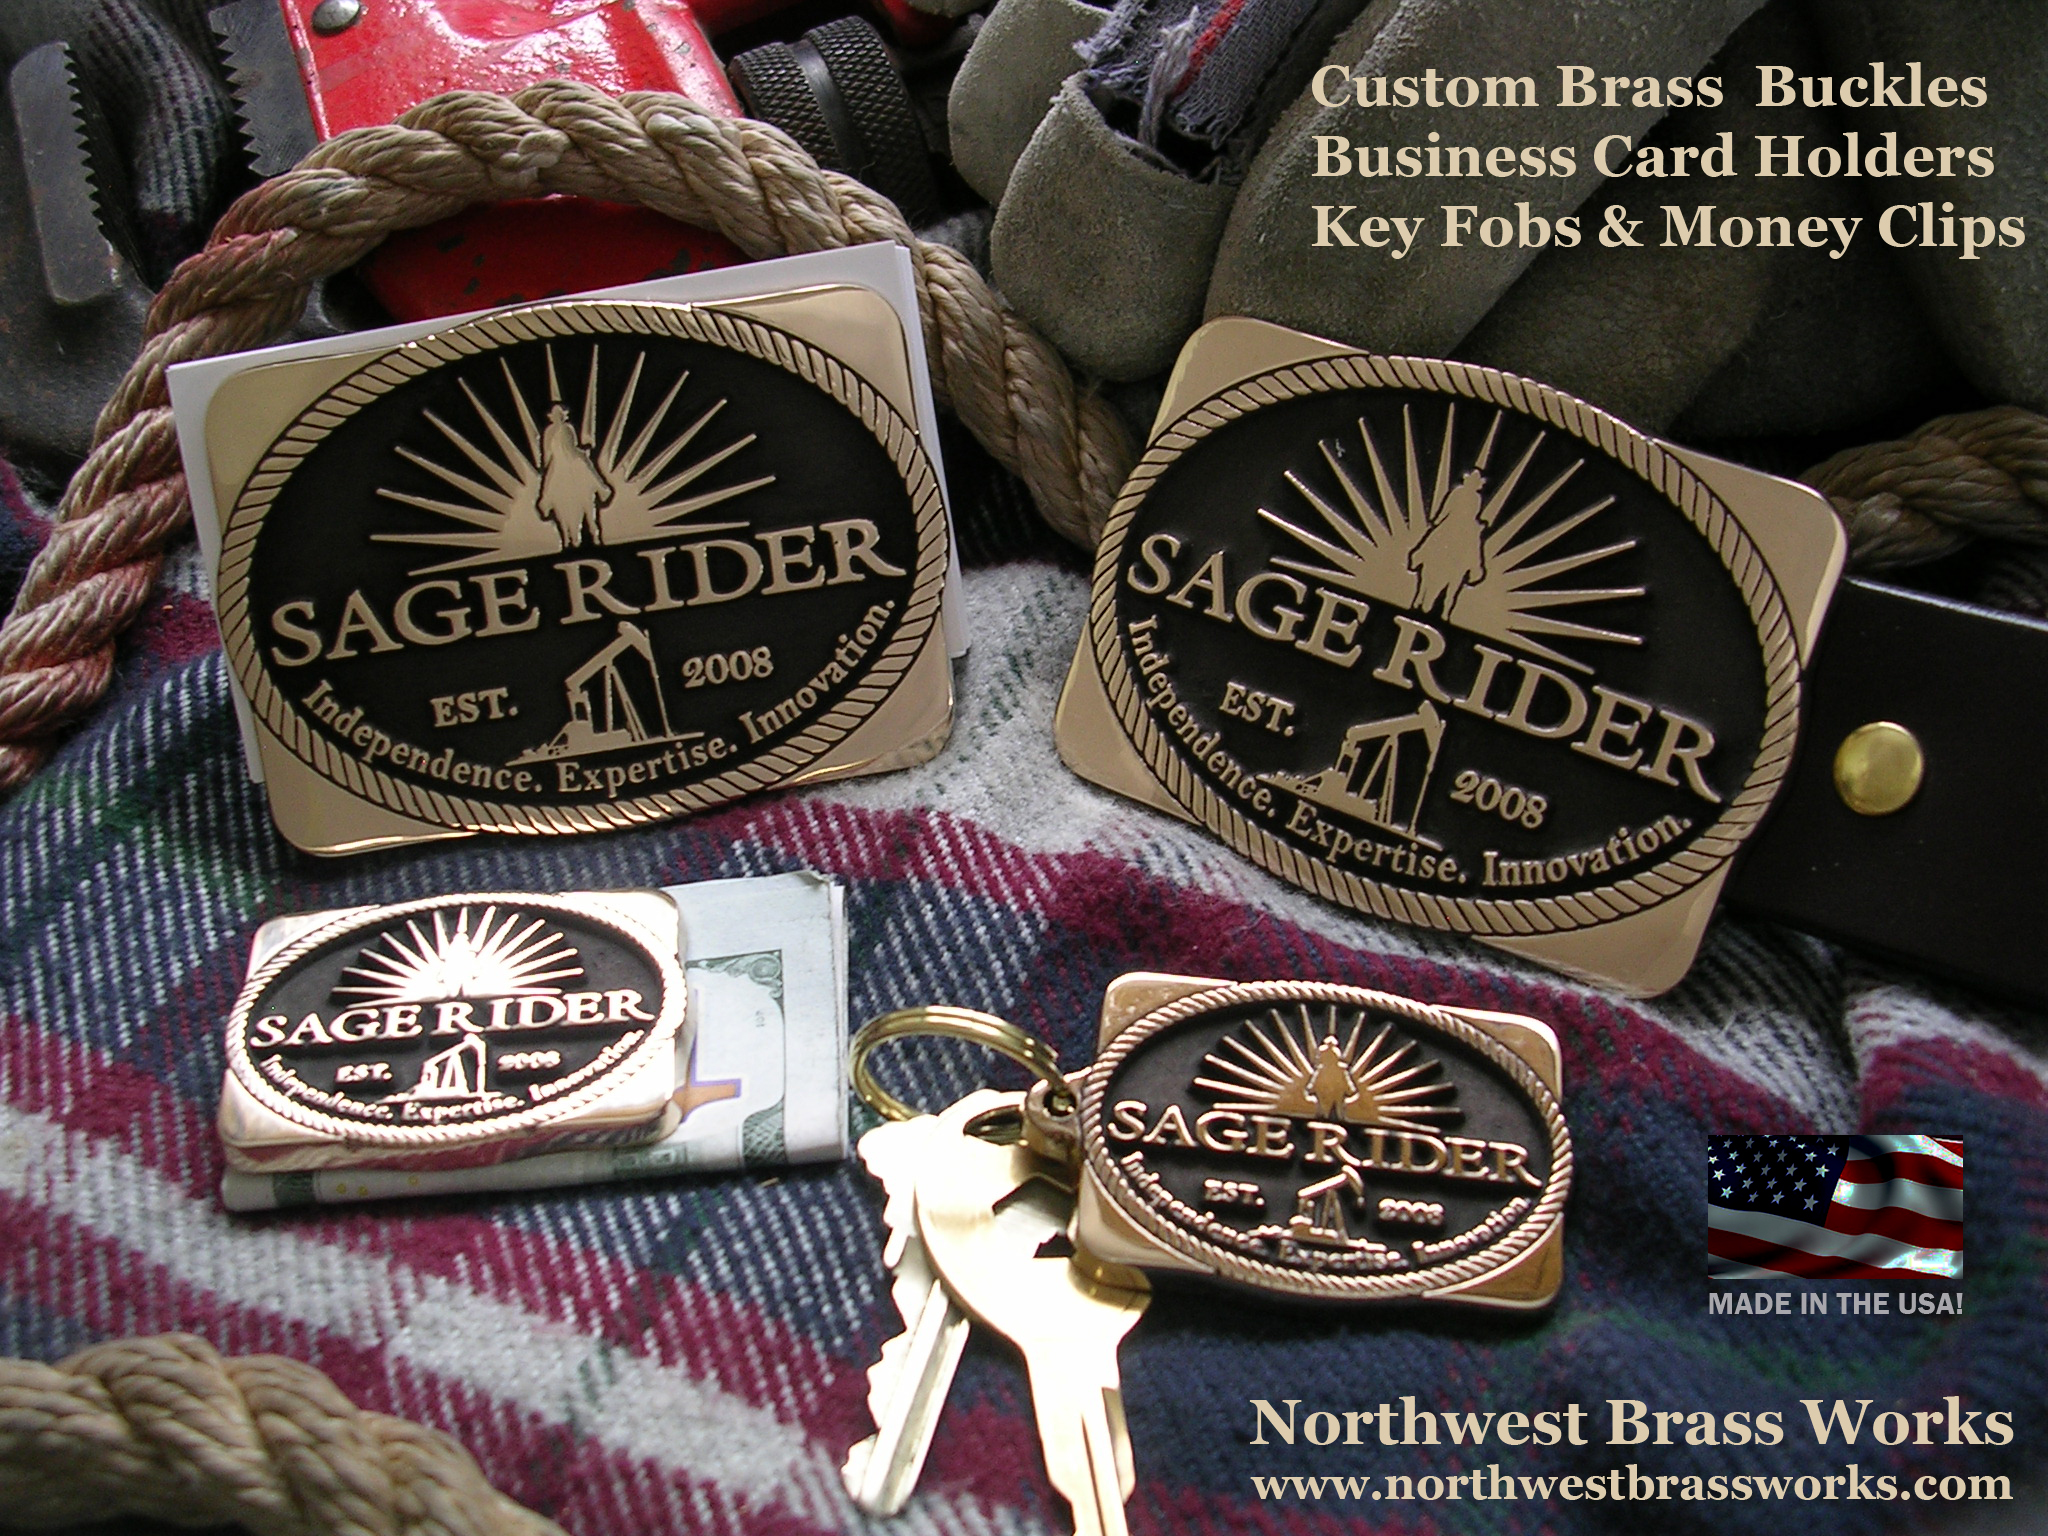 Northwest Brass Works Custom Brass Belt Buckles Business Card Holders key fobs money clips made in the USA Classic Buckles American Worker Tradesman Craftsman Welder Roughneck Military Construction Trucker Oilfield Farmer Cowboy Deckhand Painter Miner Equipment Operator Laborer Worker Mechanic Safety Award Incentive Project Job Biker Army Navy Air Force Marines second 2nd Amendment